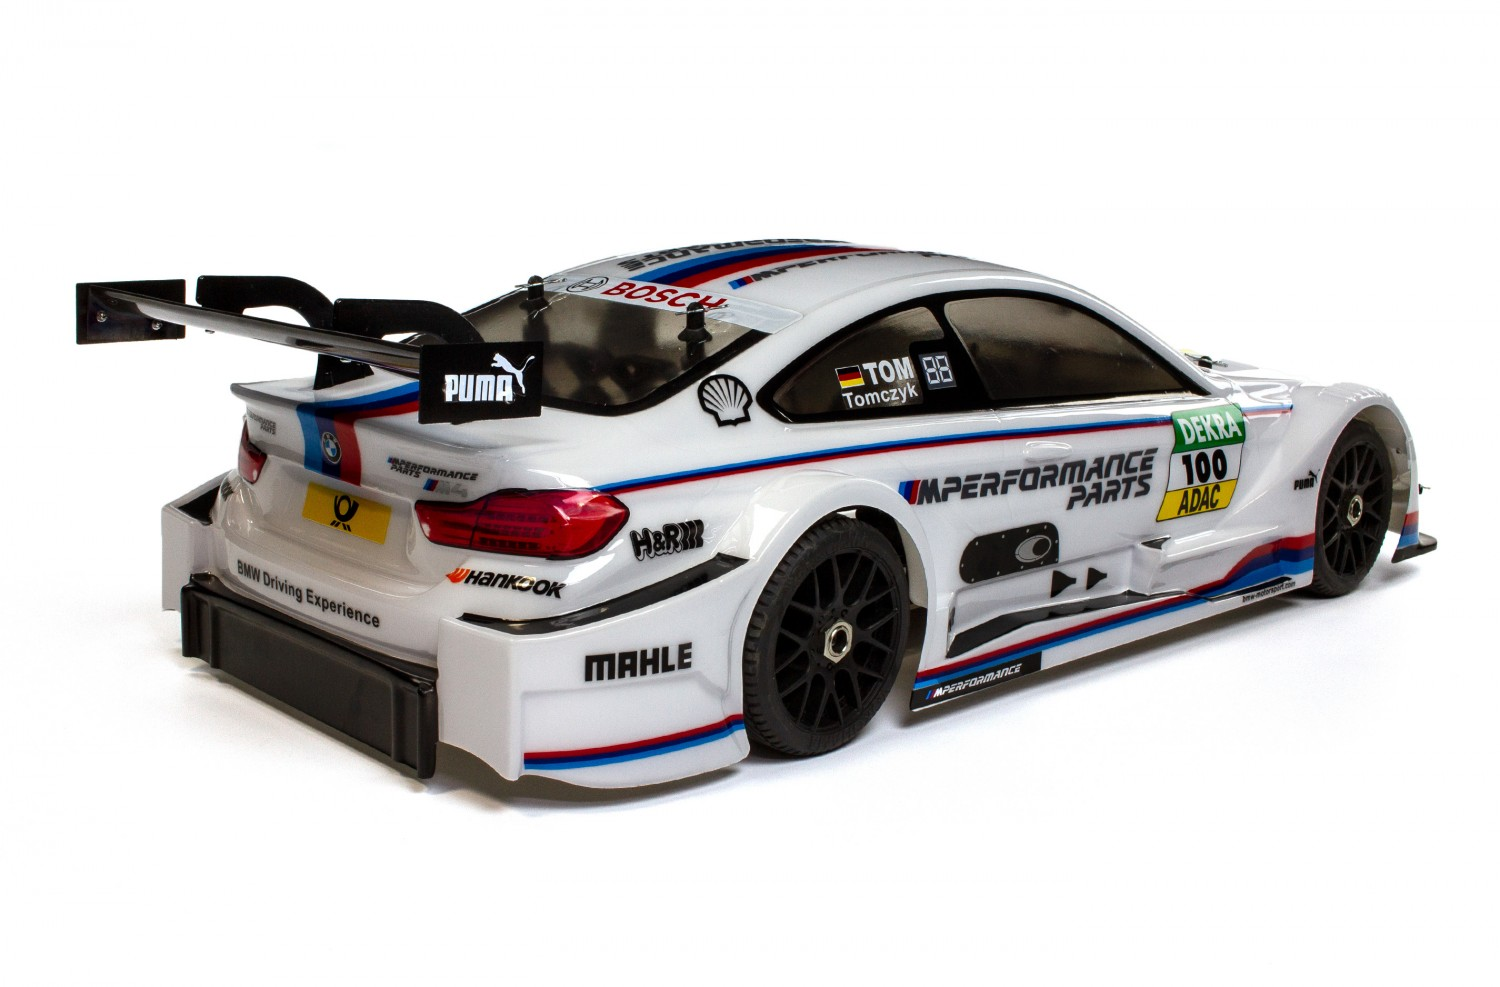 bmw m4 1 5 body for 530 535 mm wheelbase with rear spoiler. Black Bedroom Furniture Sets. Home Design Ideas